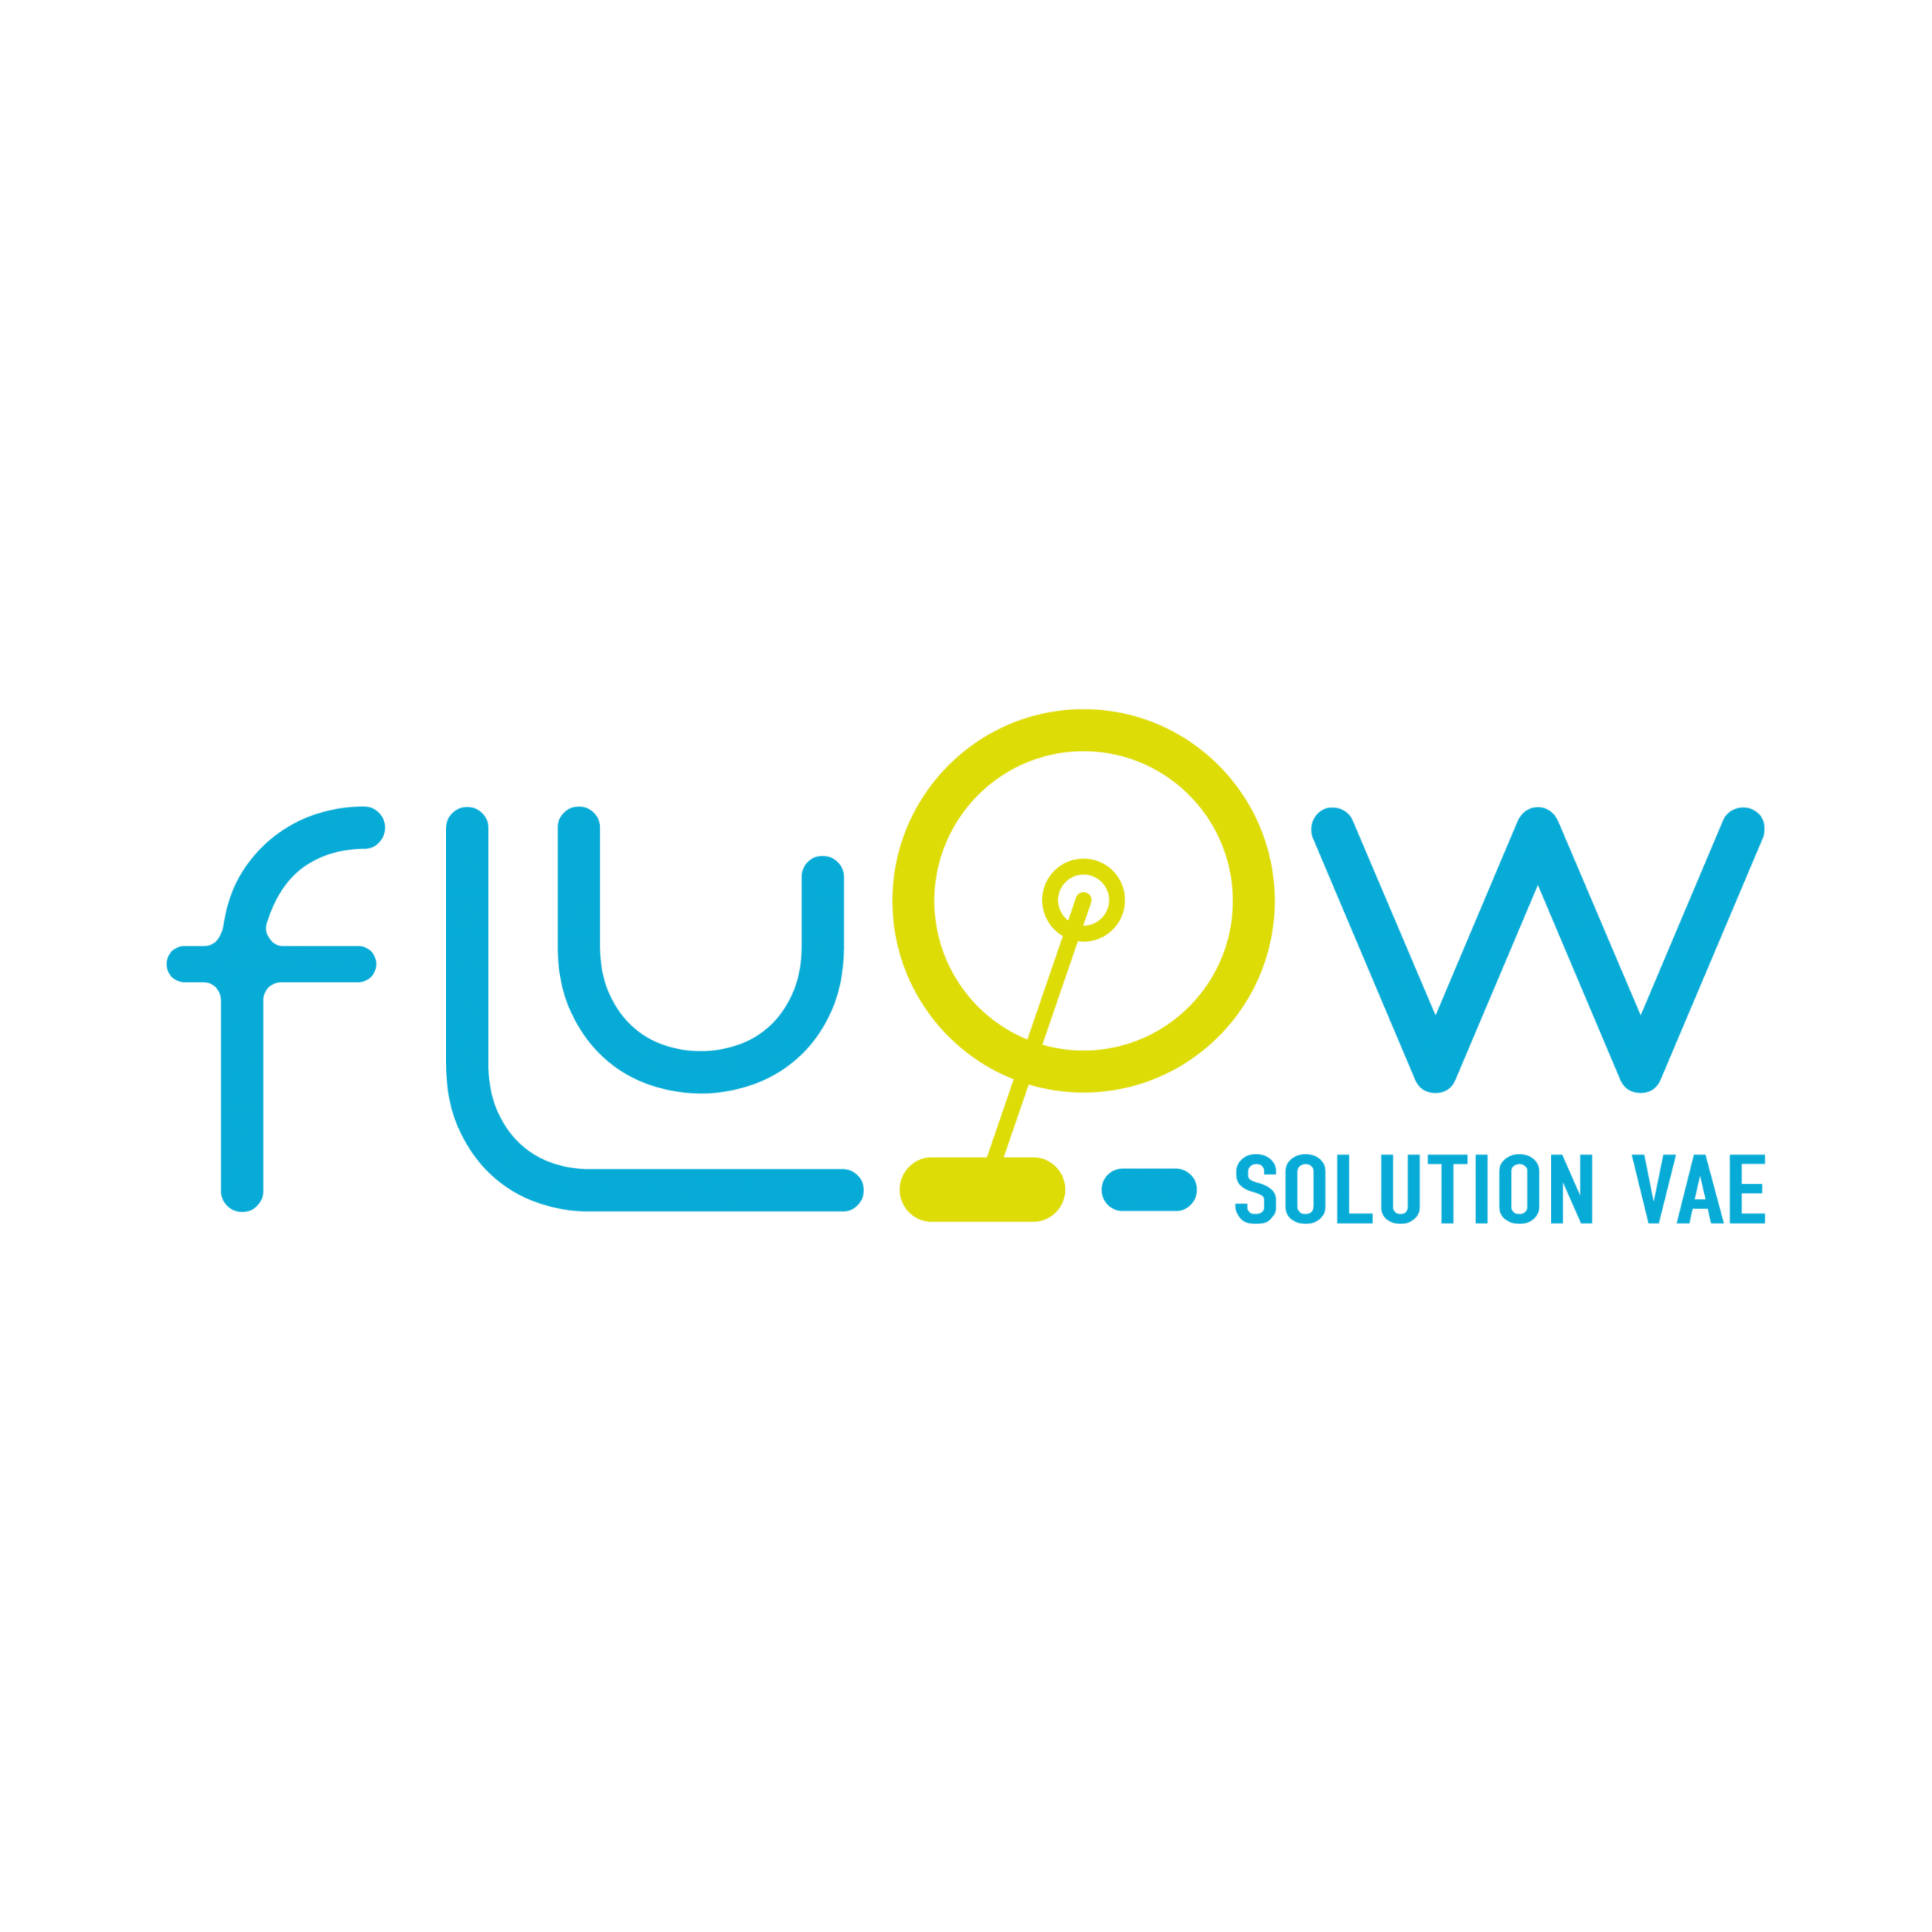 Fluow png